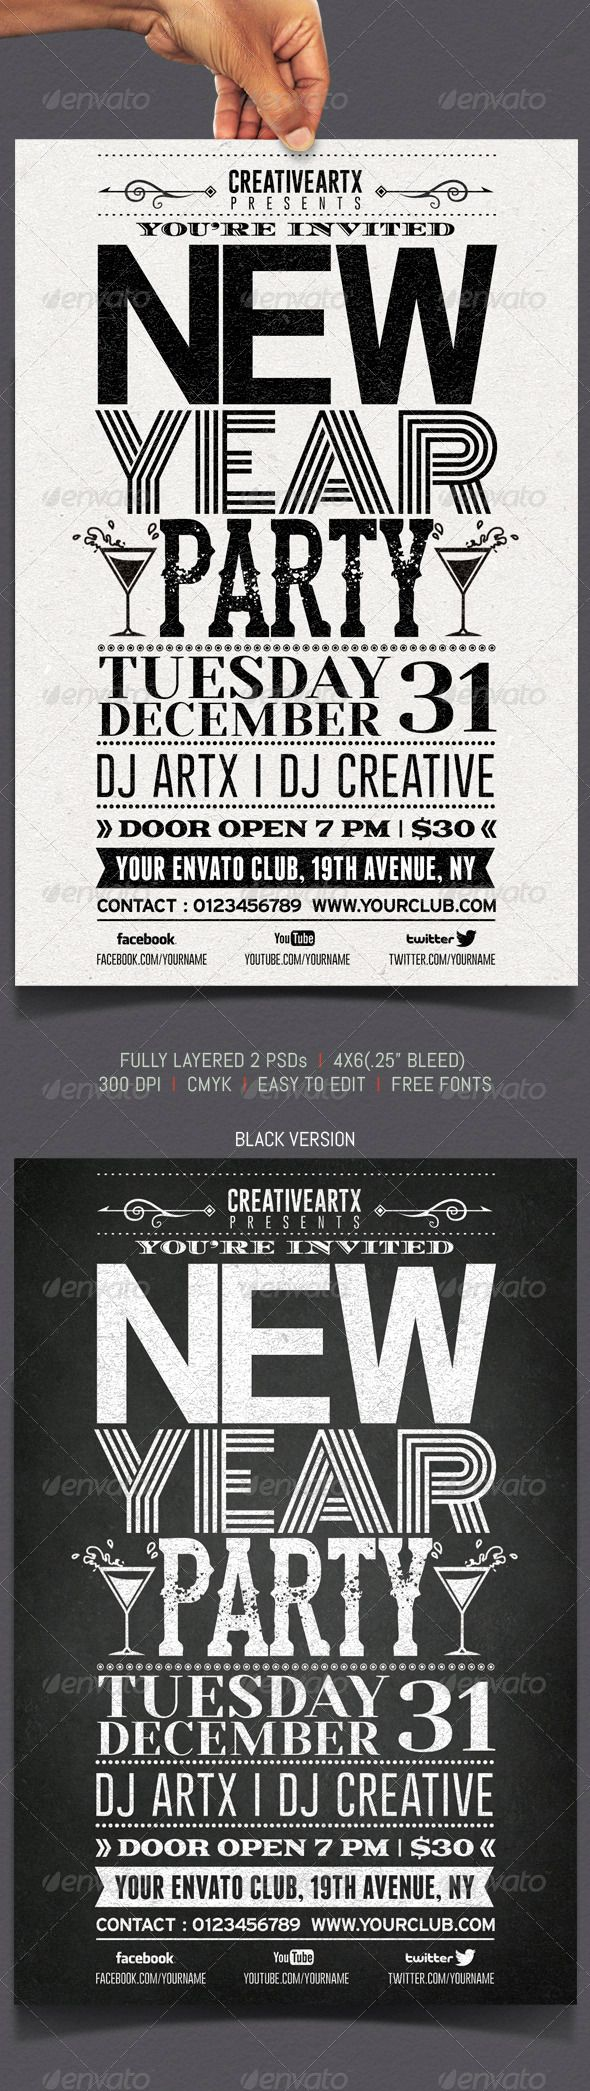 Best Events Images On   Flyer Template Party Flyer